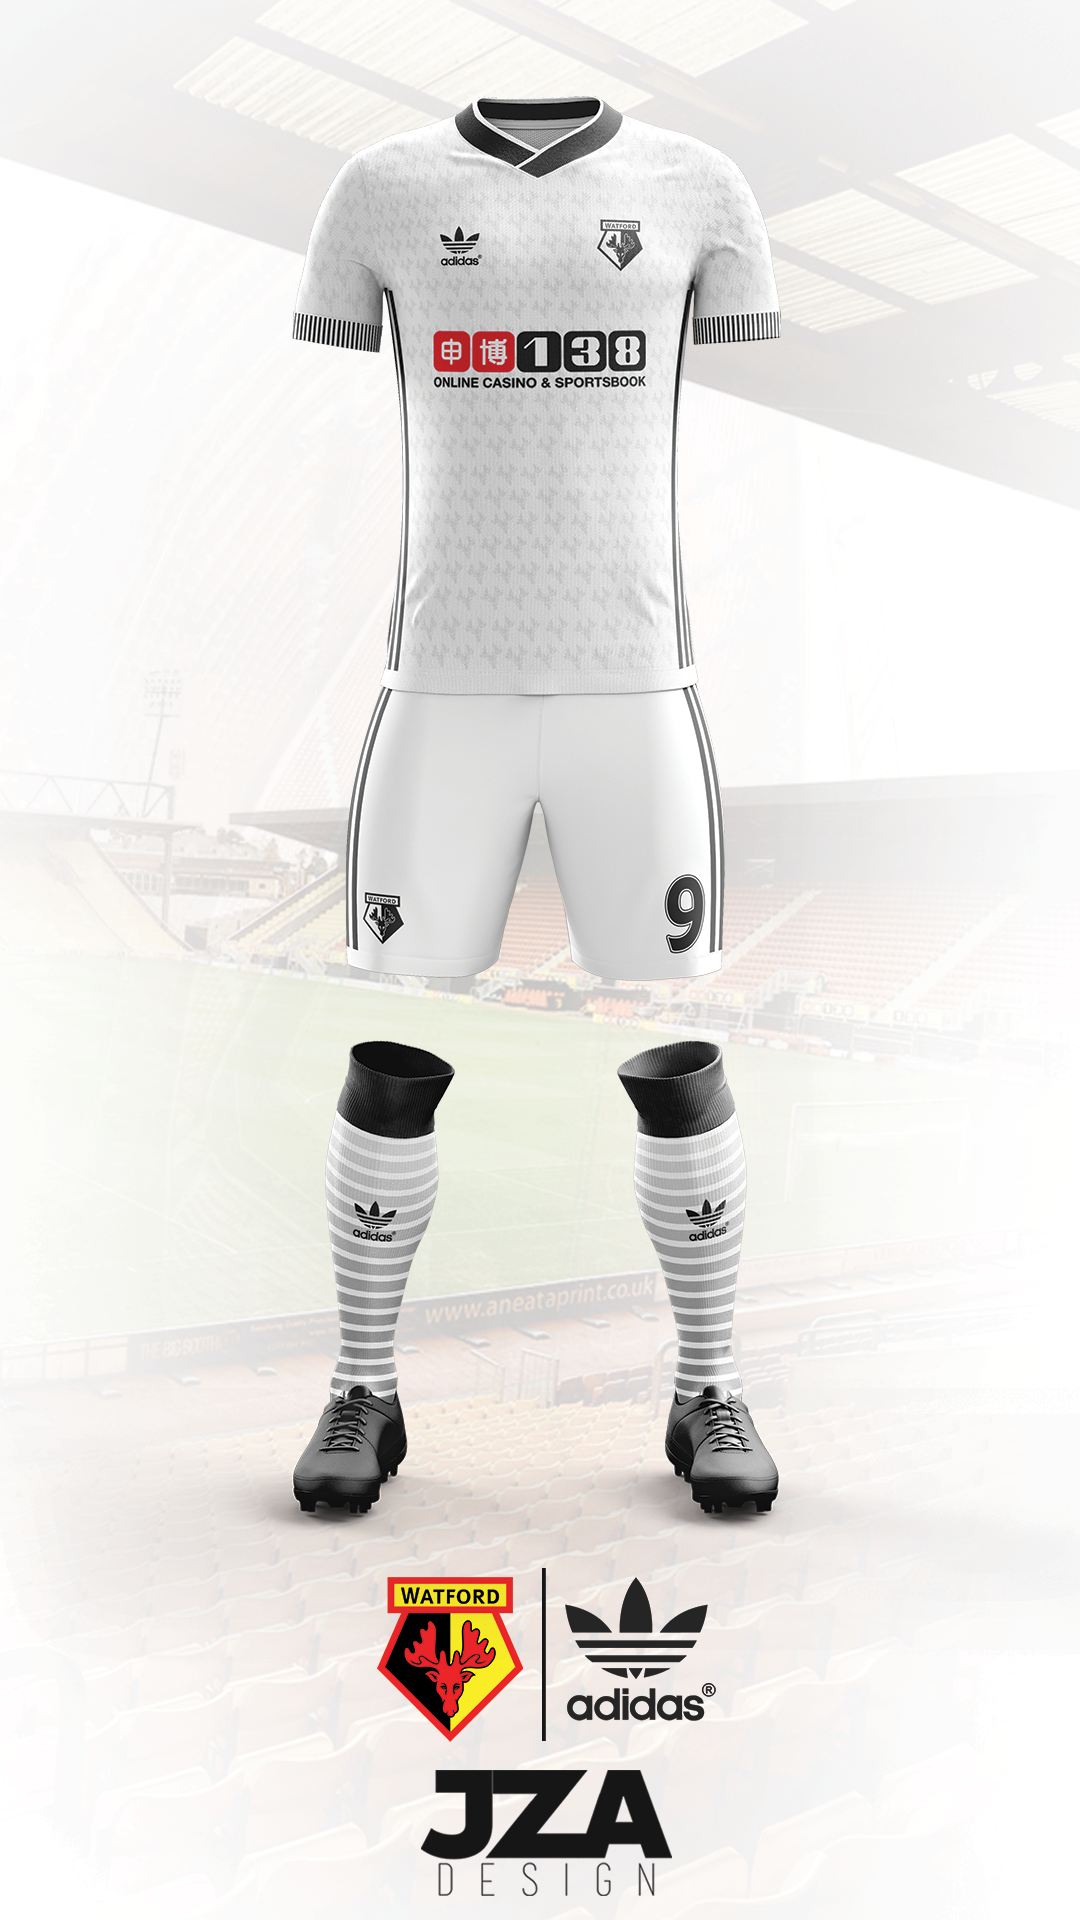 Watford 17 18 Adidas Kit Concept on Behance  a7dfa008e